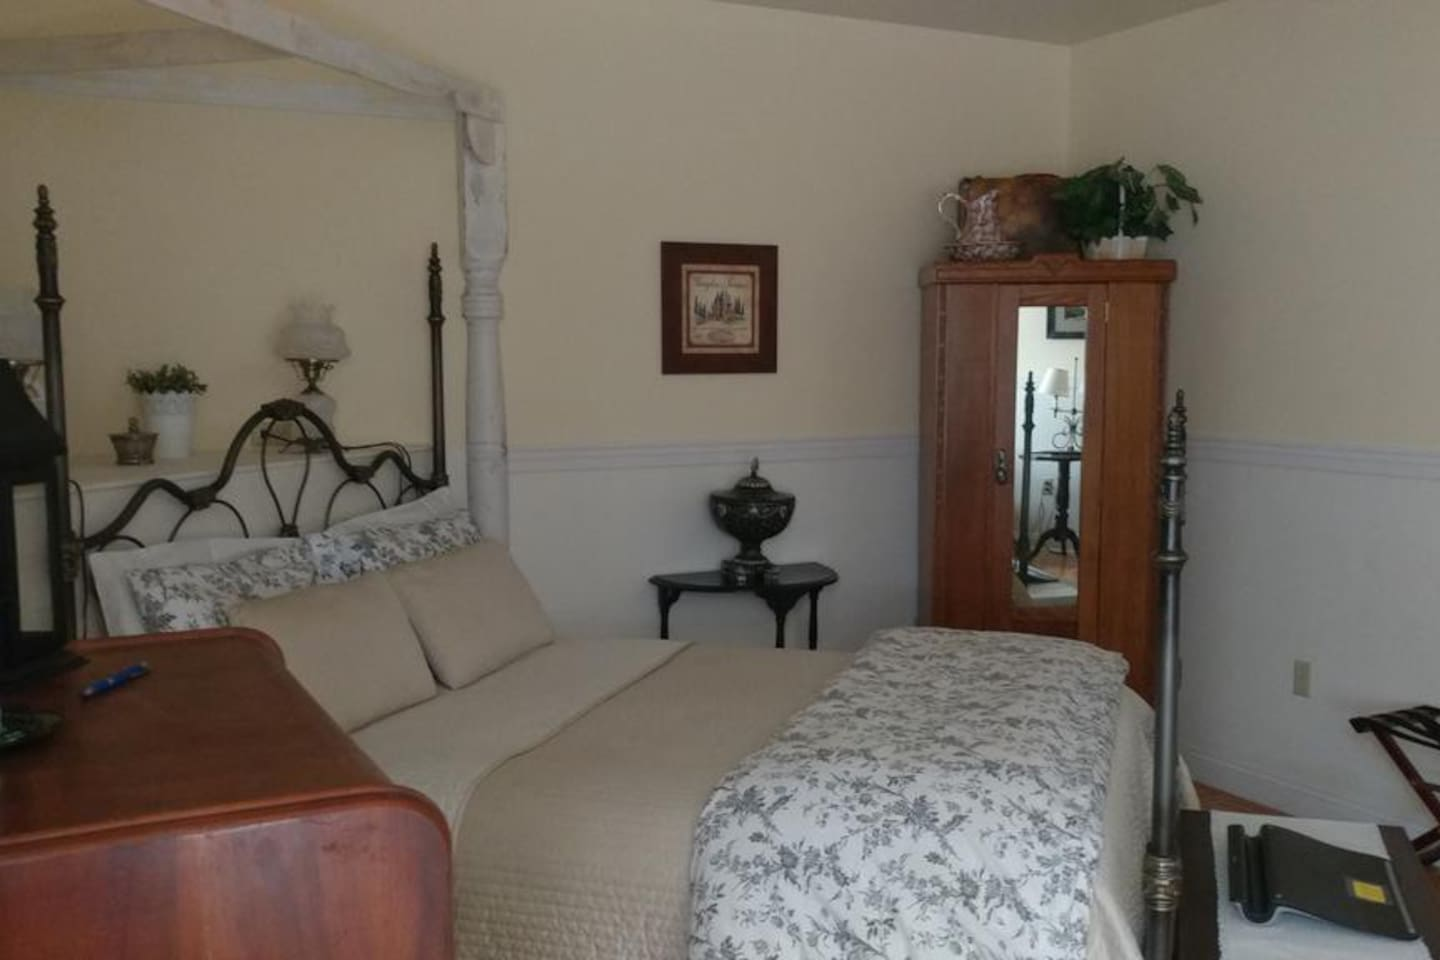 View of room from loveseat.